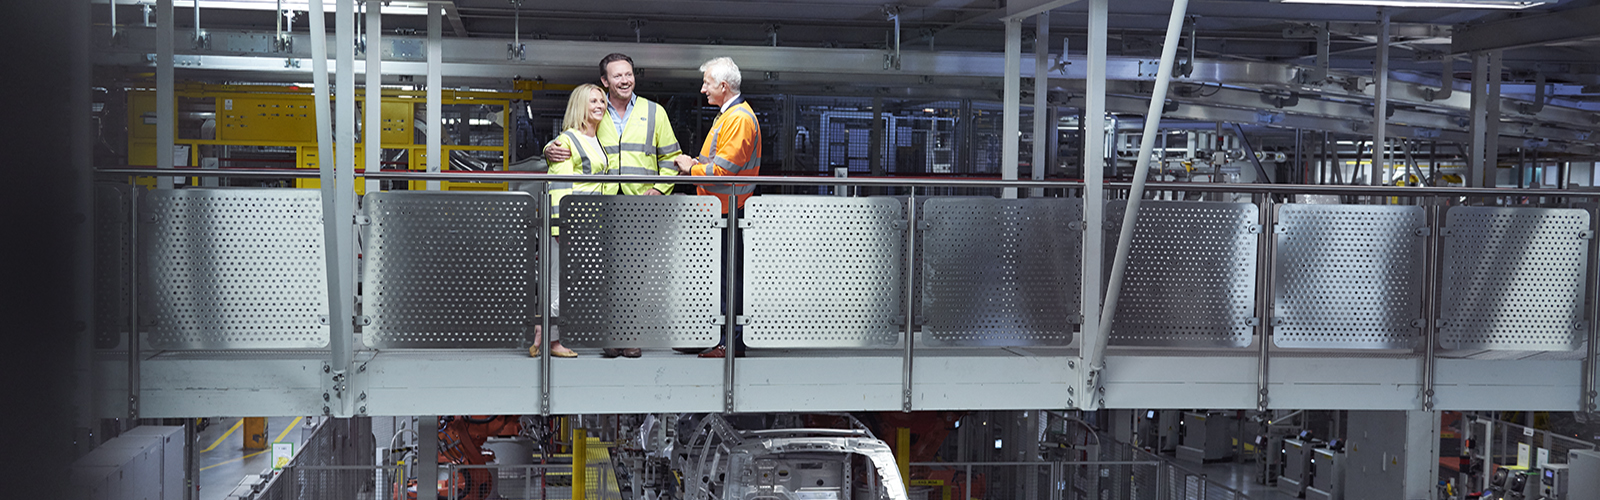 Enjoy our VIP Manufacturing Tour to view your Range Rover being built.<br><br>